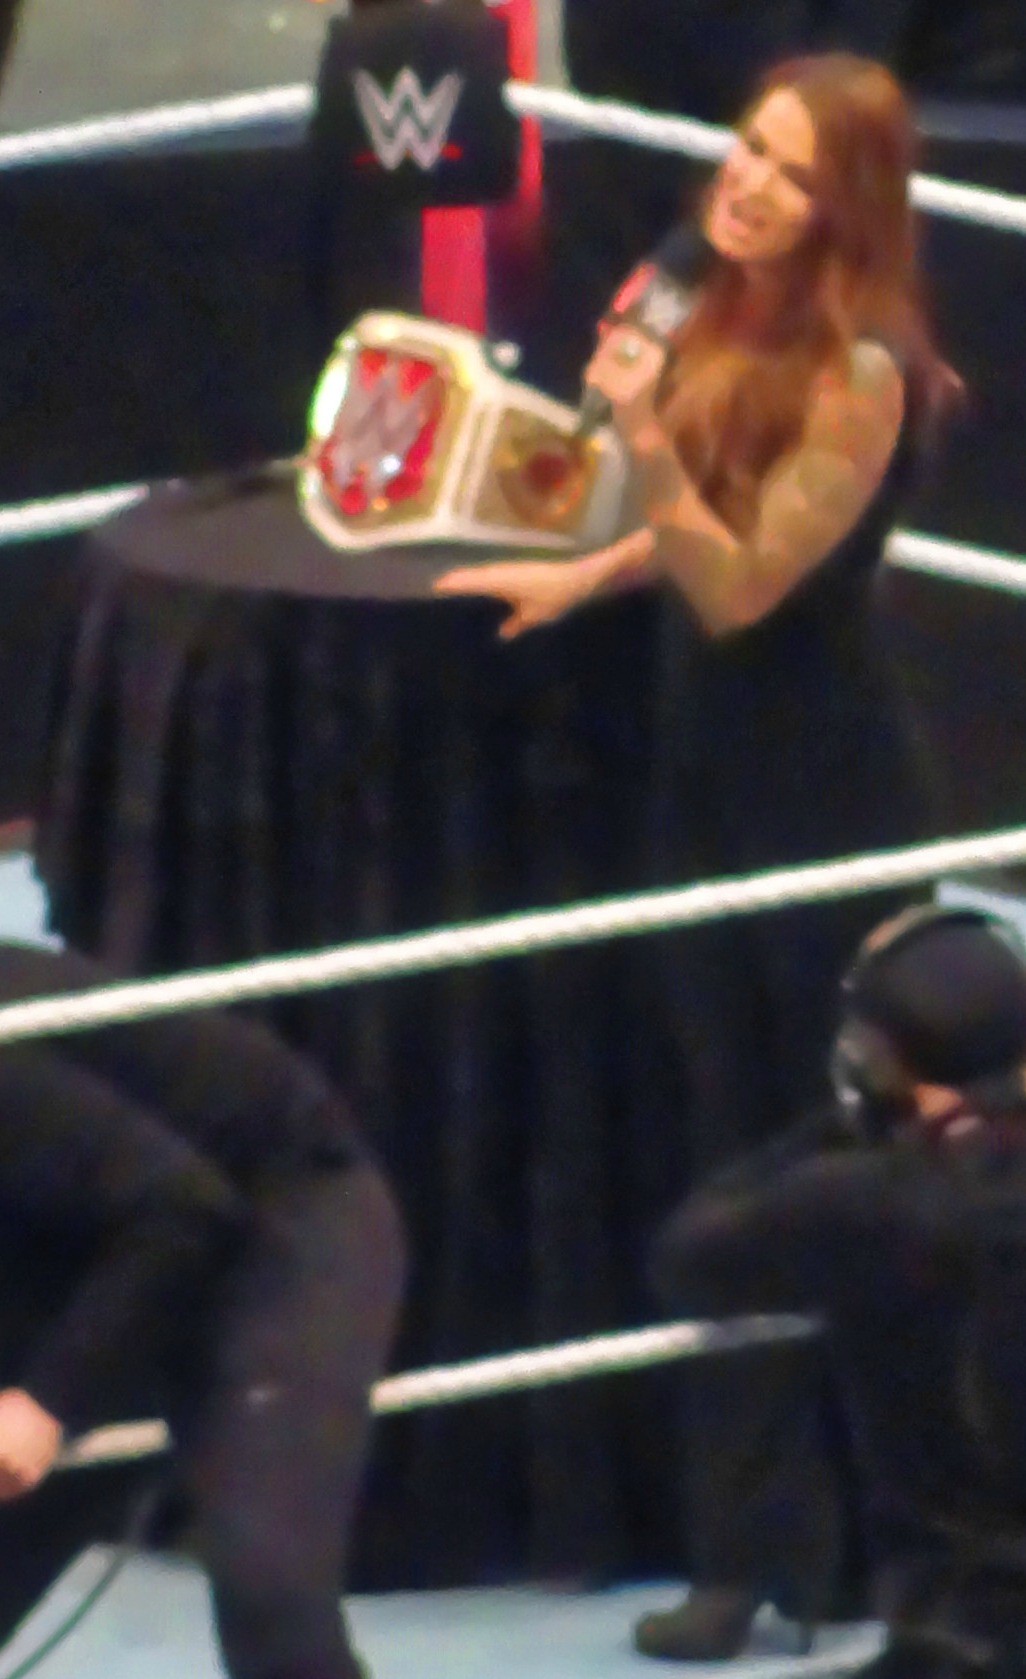 Lita during the presentation of the WWE Women's Championship at WrestleMania 32 in April 2016